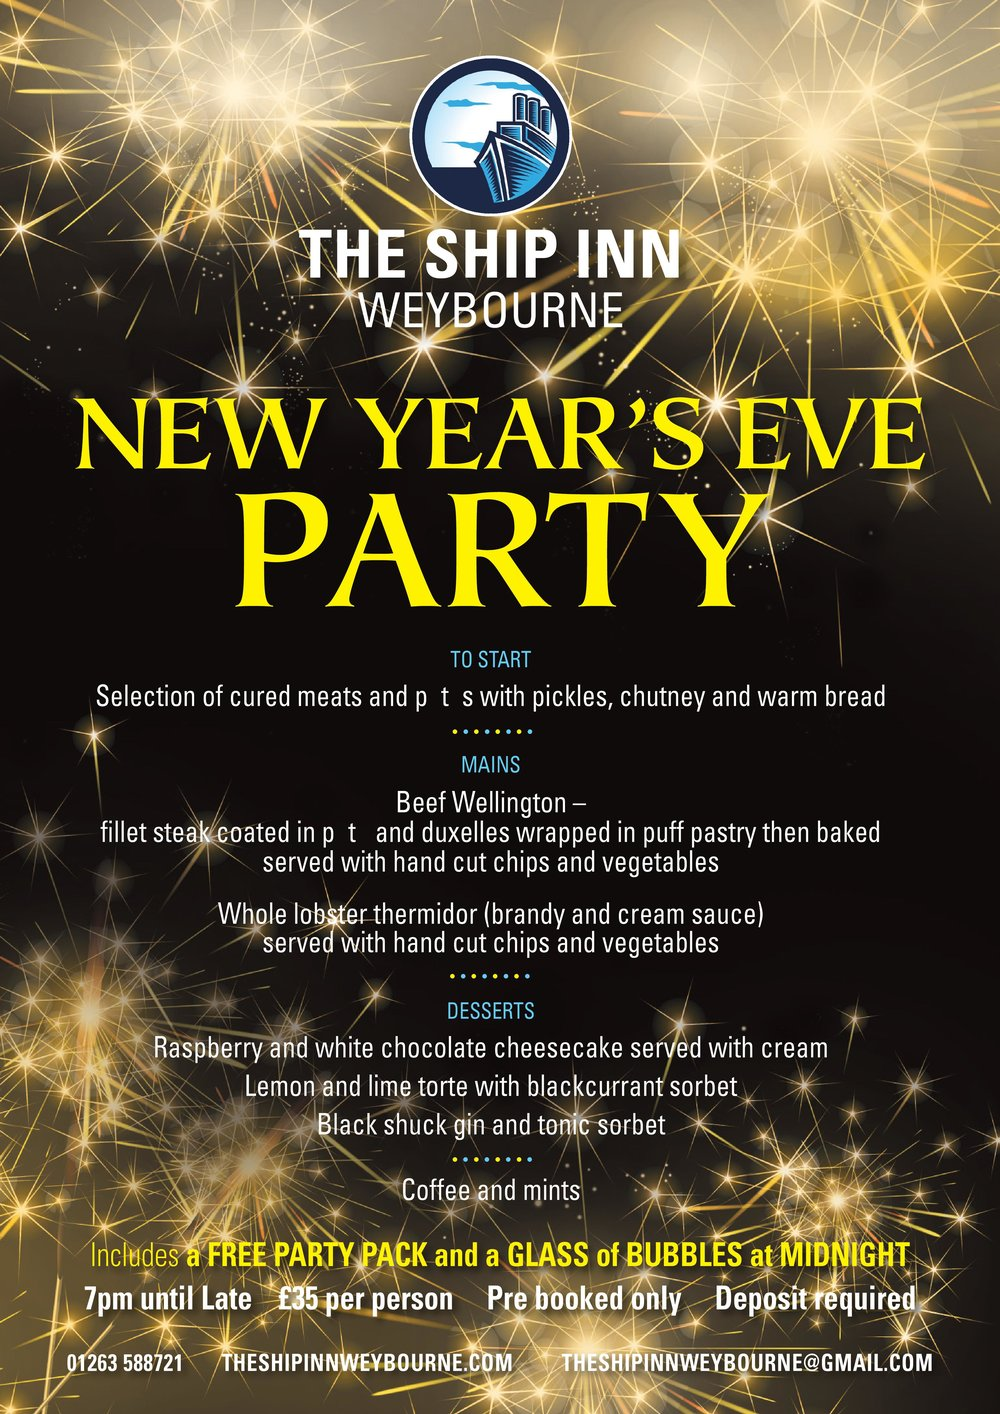 6794 THE SHIP A3 NYE Poster 2017 Proof3-page-001.jpg